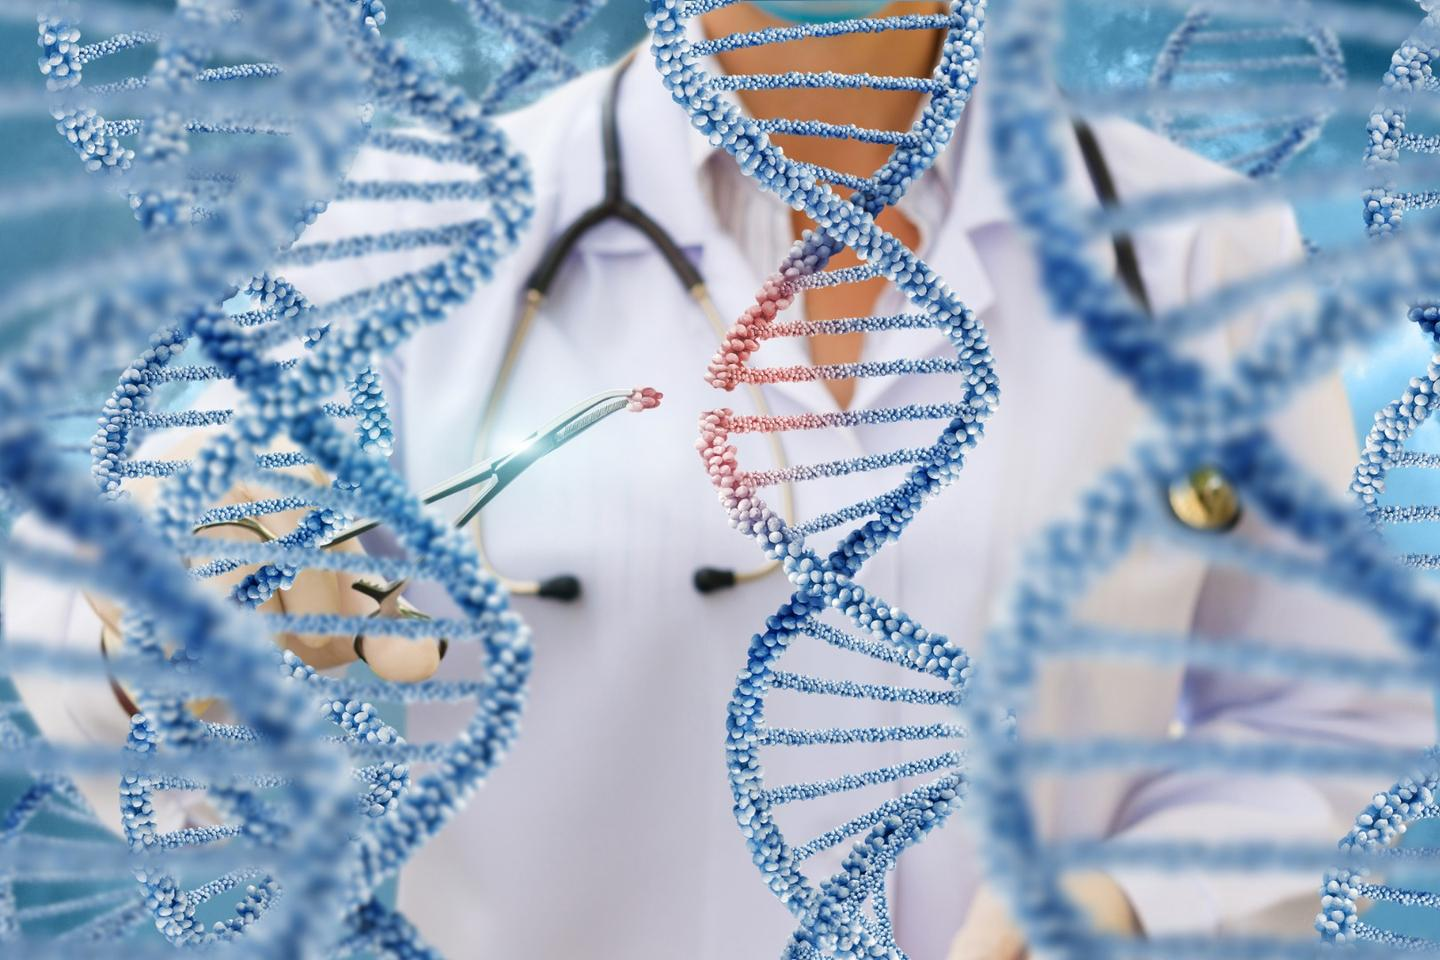 New research suggests that the CRISPR-Cas9 gene editing technique could increase the risk of cancer in edited cells